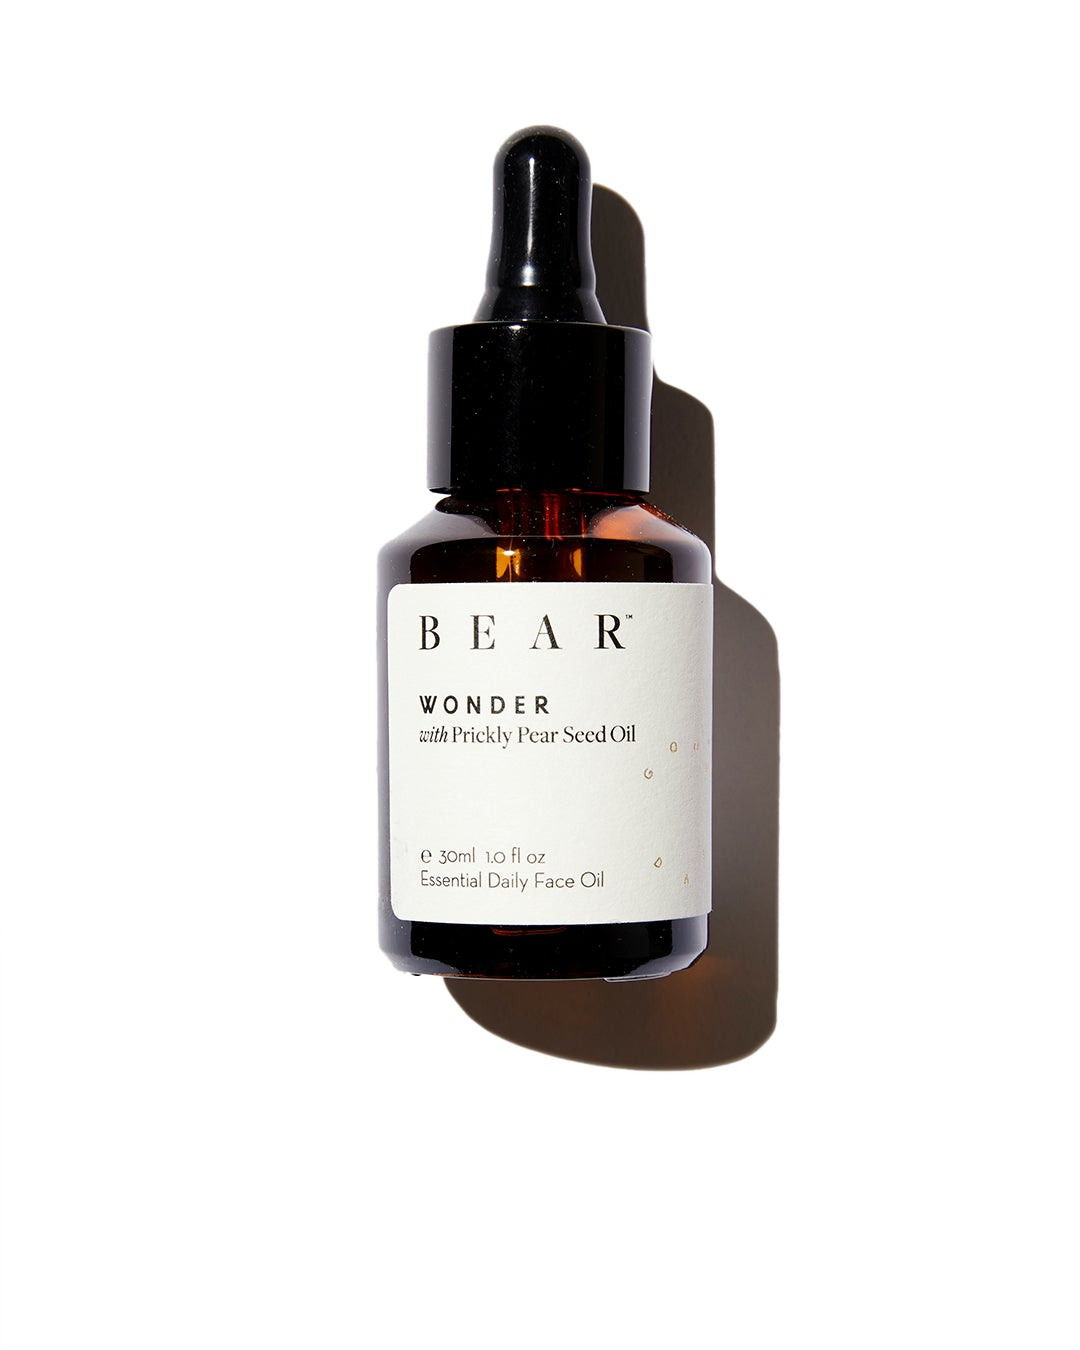 Bear face oil dropper bottle on white background